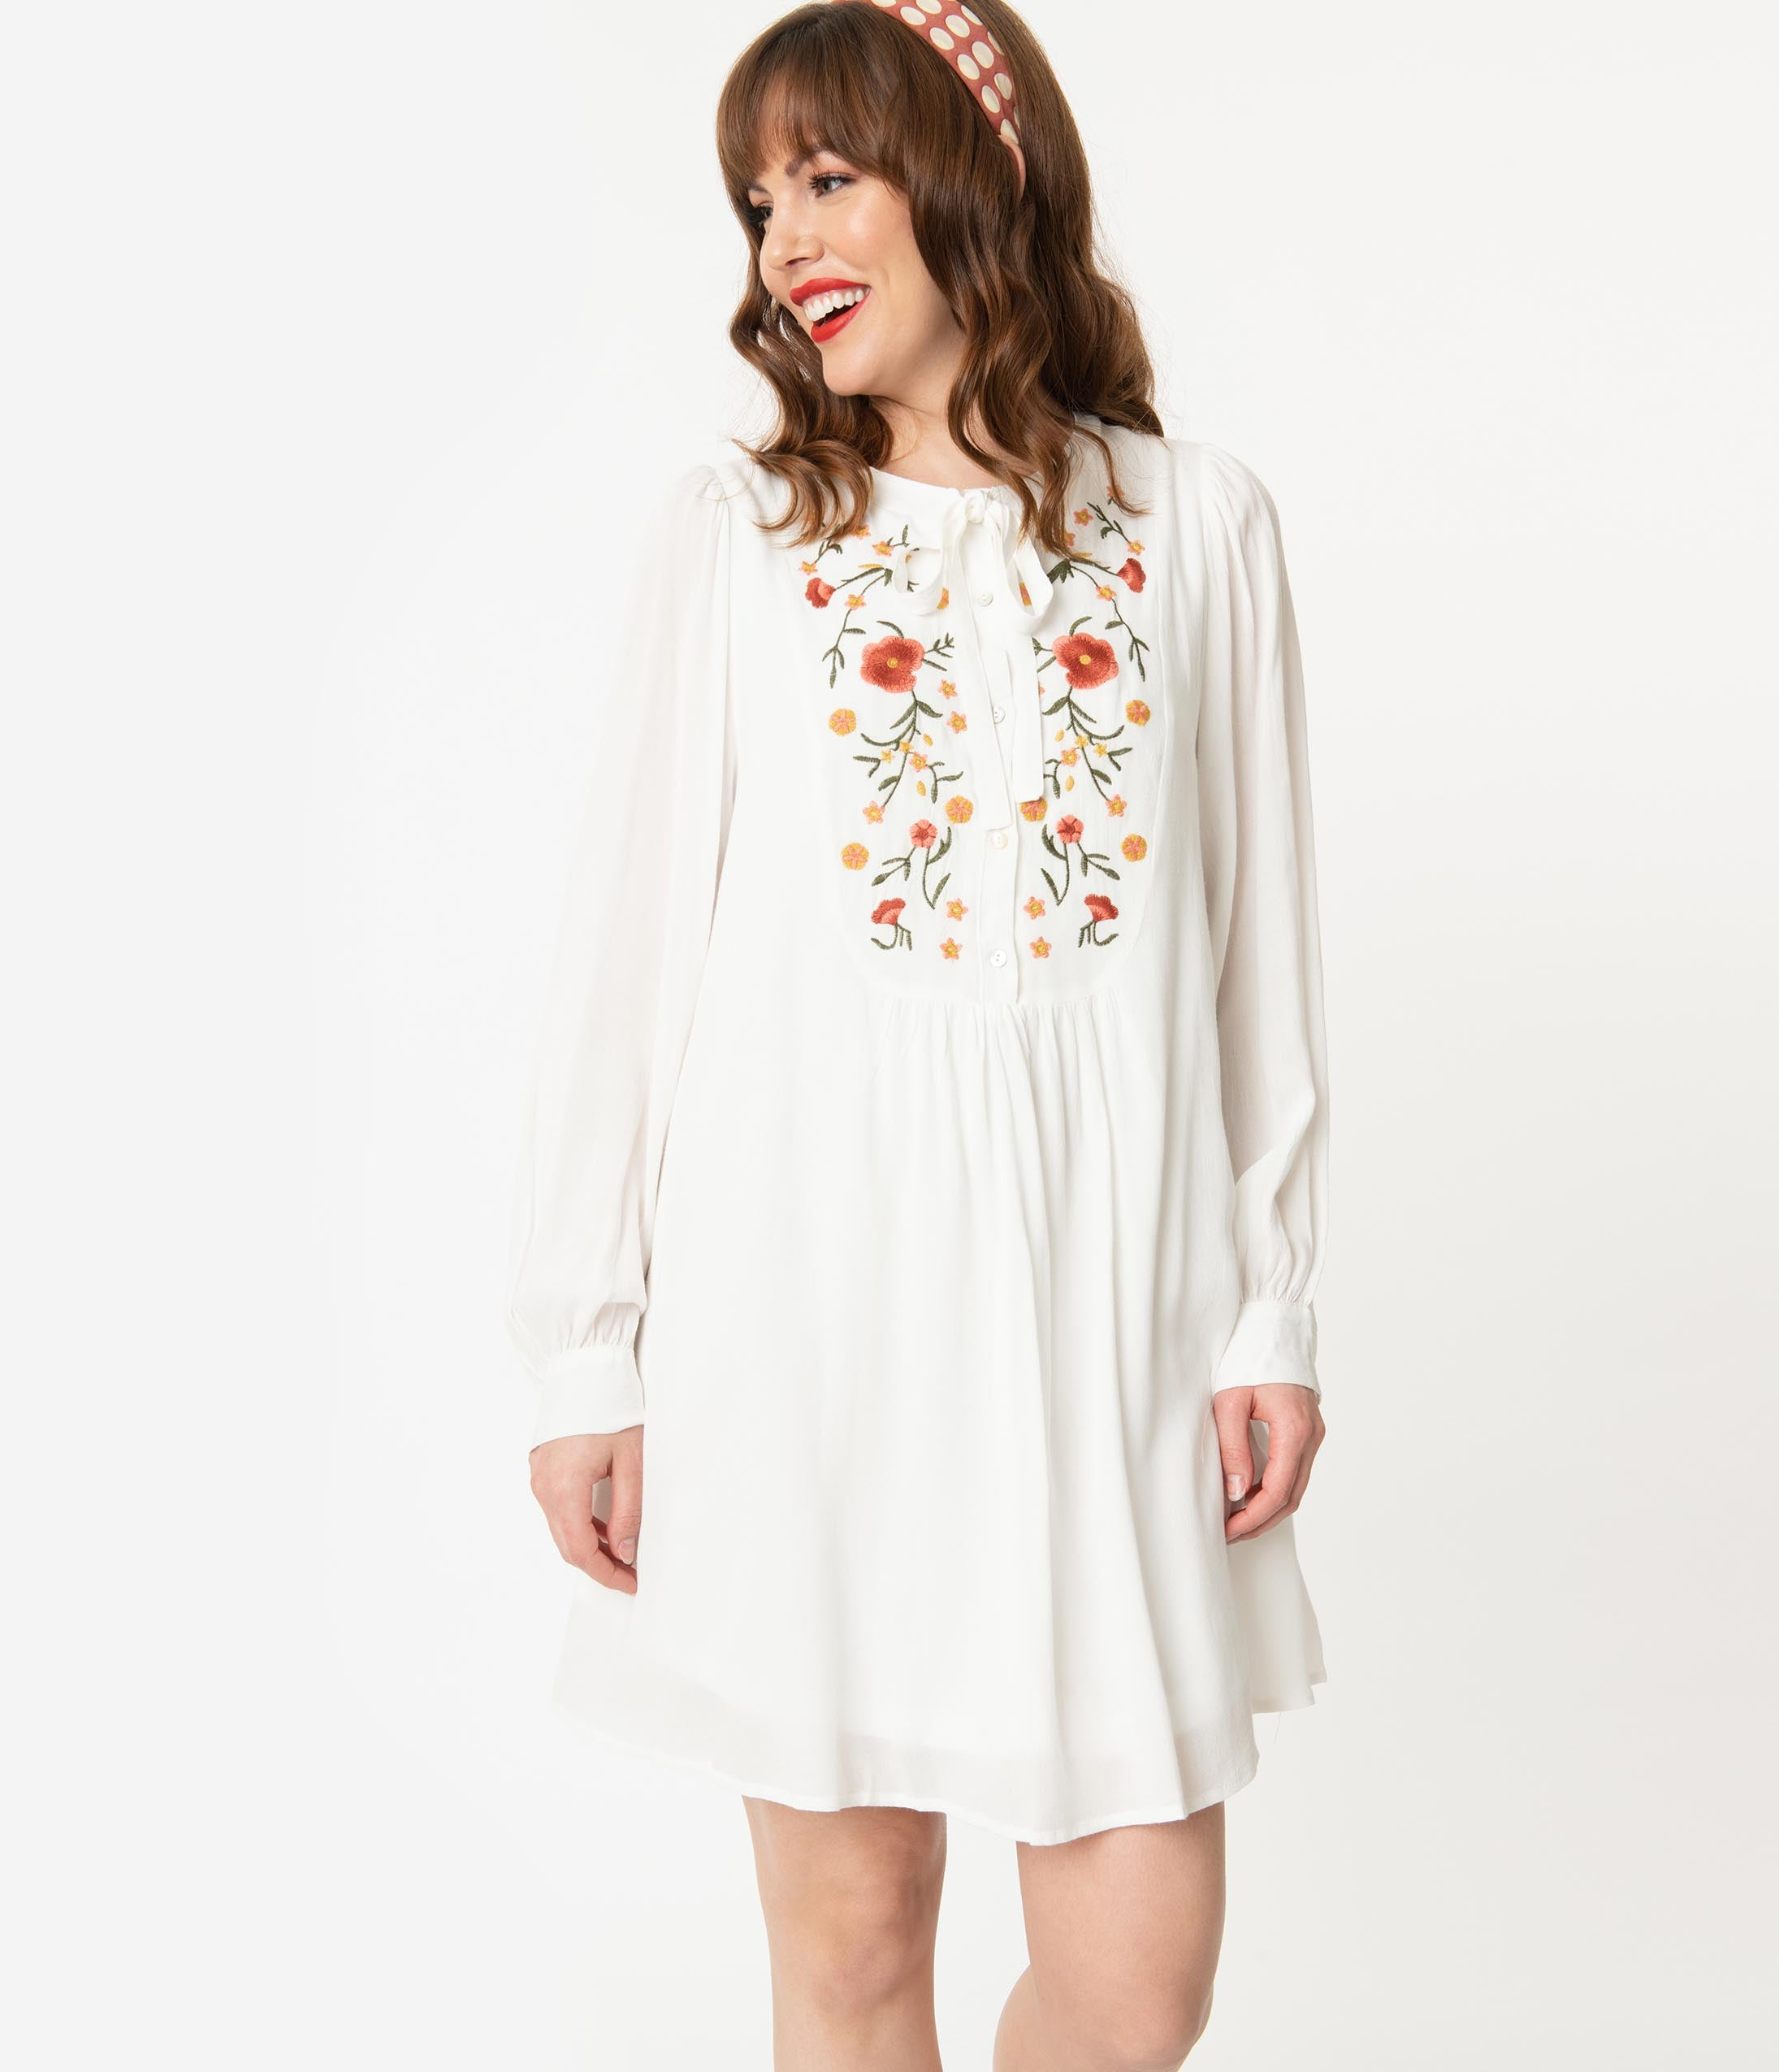 Vintage Evening Dresses and Formal Evening Gowns Retro Style Off White Floral Embroidered Tunic Dress $68.00 AT vintagedancer.com